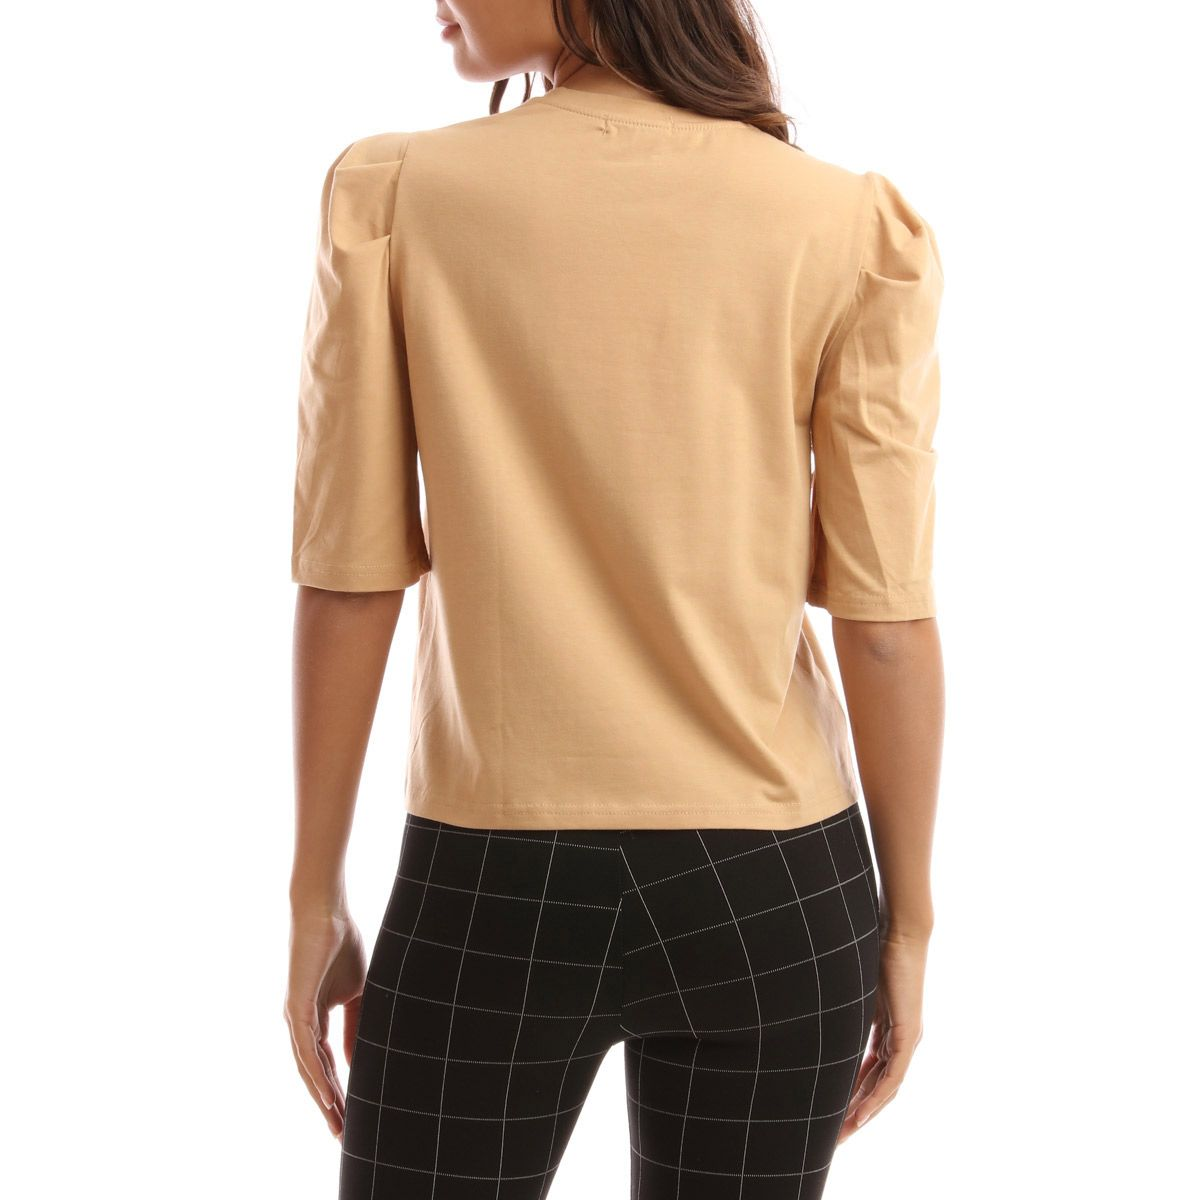 Top taupe à manches bouffantes